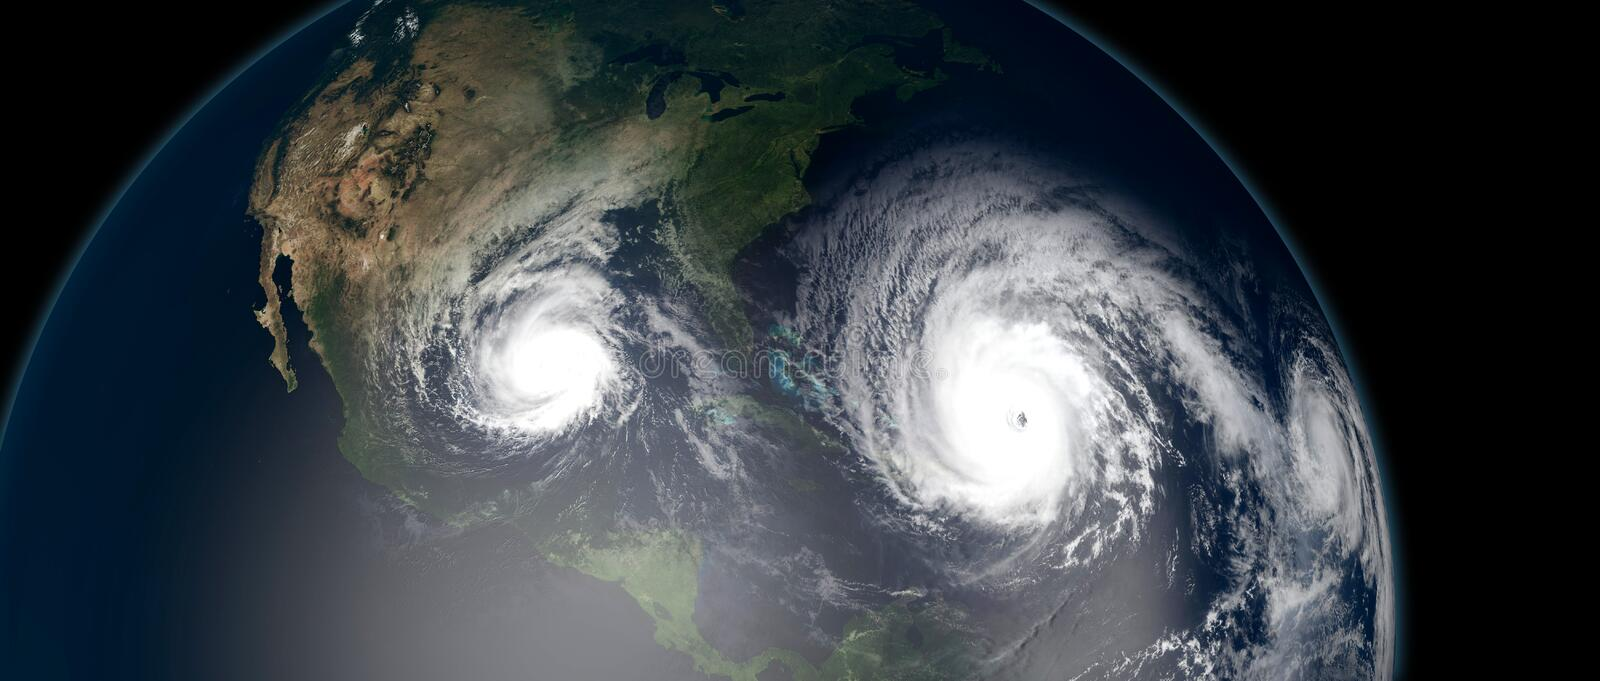 Extremely detailed and realistic high resolution 3d illustration of 3 hurricanes approaching the Caribbean Islands and Florida. royalty free illustration